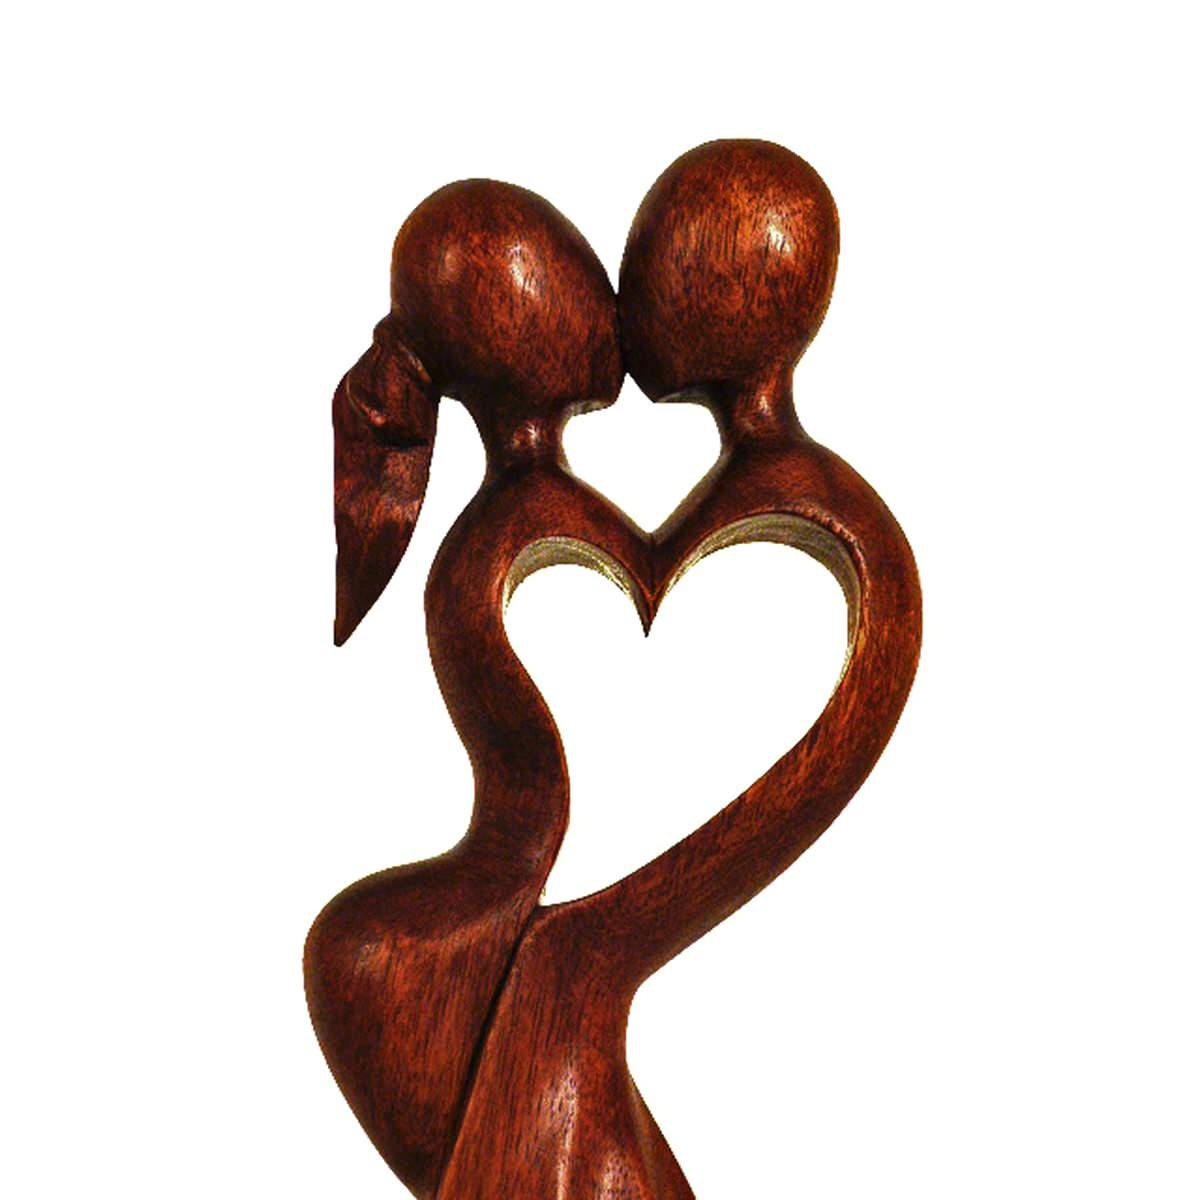 wood figure sculpture abstract wood figure africa asia handmade decode wedding ebay. Black Bedroom Furniture Sets. Home Design Ideas